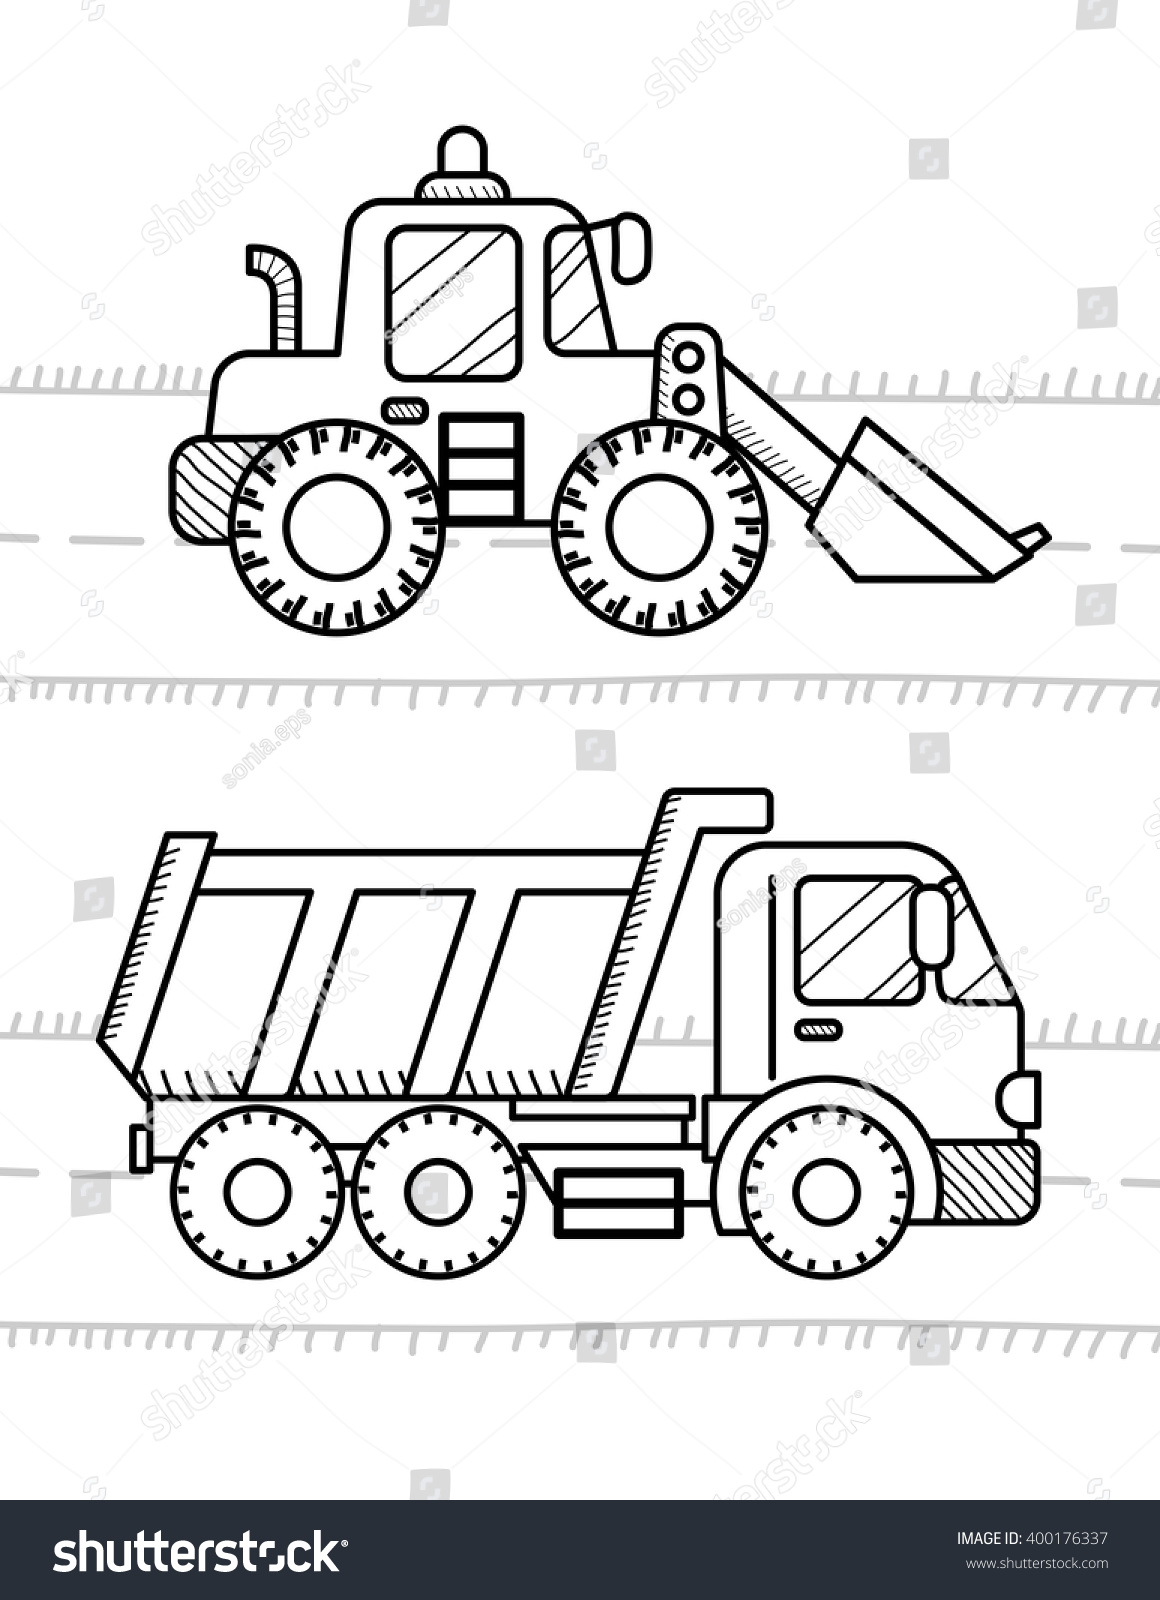 Coloring pictures of cars truck tractors - Cars And Vehicles Coloring Book For Kids Dump Truck Excavator Dozer Digger Tractor